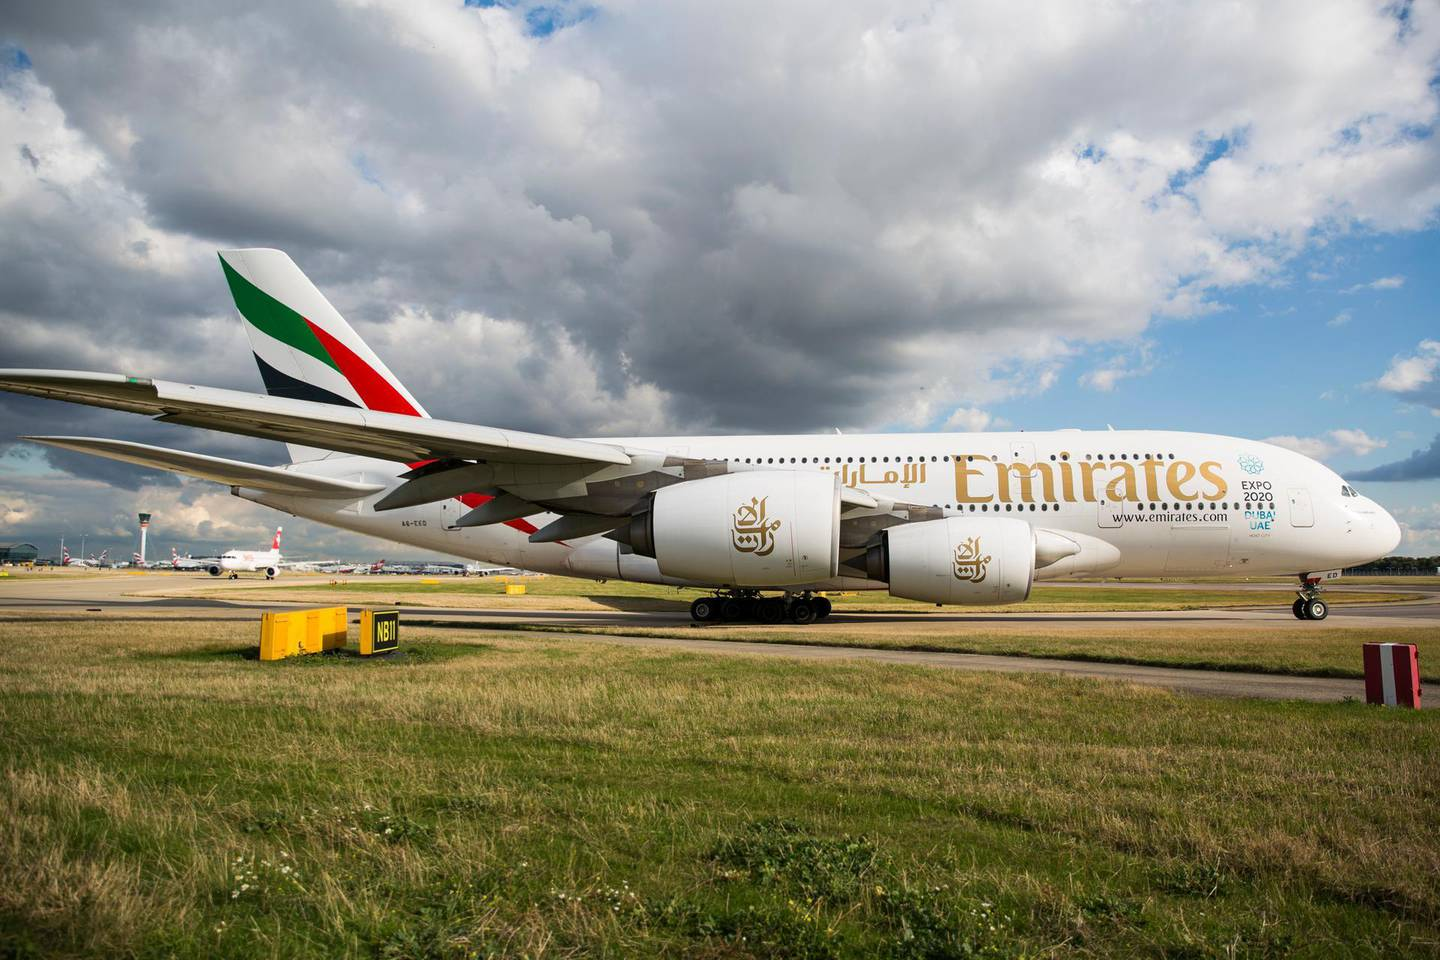 LONDON, ENGLAND - OCTOBER 11: An Emirates Airbus A380 aircraft at Heathrow Airport on October 11, 2016 in London, England. The UK government has said it will announce a decision on airport expansion soon. Proposals include either a third runway at Heathrow, an extension of a runway at the airport or a new runway at Gatwick Airport. (Photo by Jack Taylor/Getty Images) *** Local Caption ***  bz10no-emirates-group.jpg